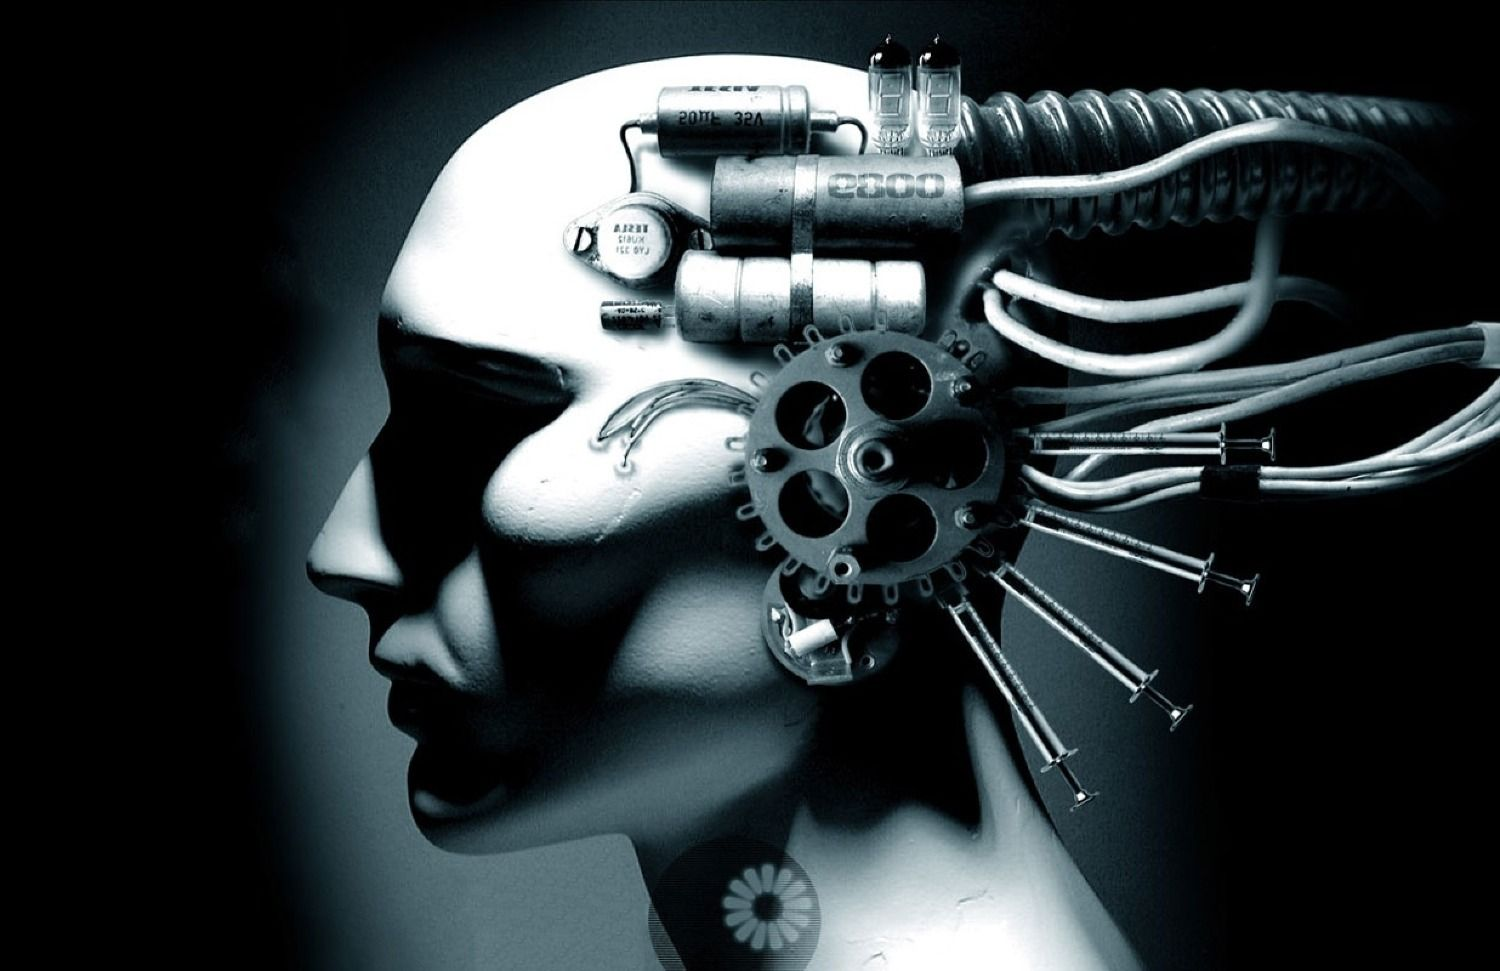 The Unconscious Christian Theology of Transhumanism